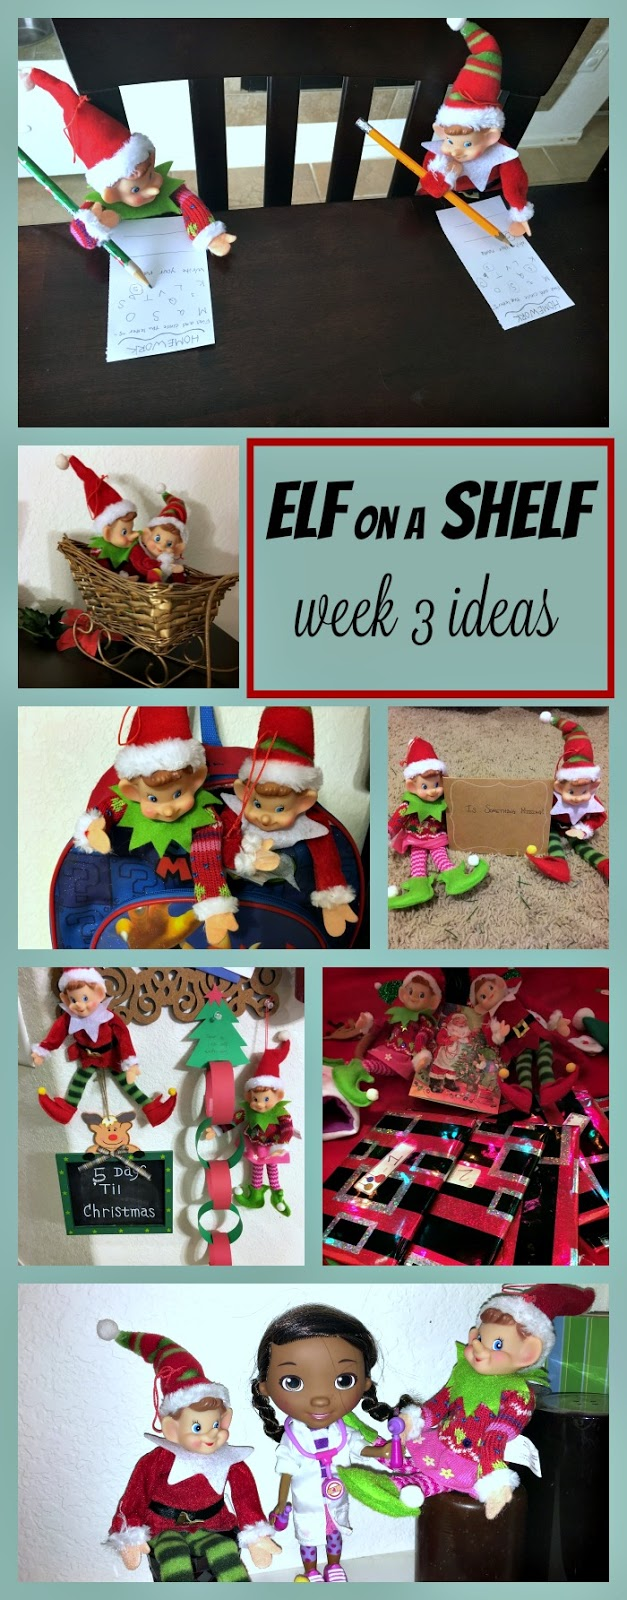 Elf on the shelf ideas, elf on the shelf naughty list, elfs on the shelf steal the tree, elf on the shelf easy ideas for kids, elf on the shelf